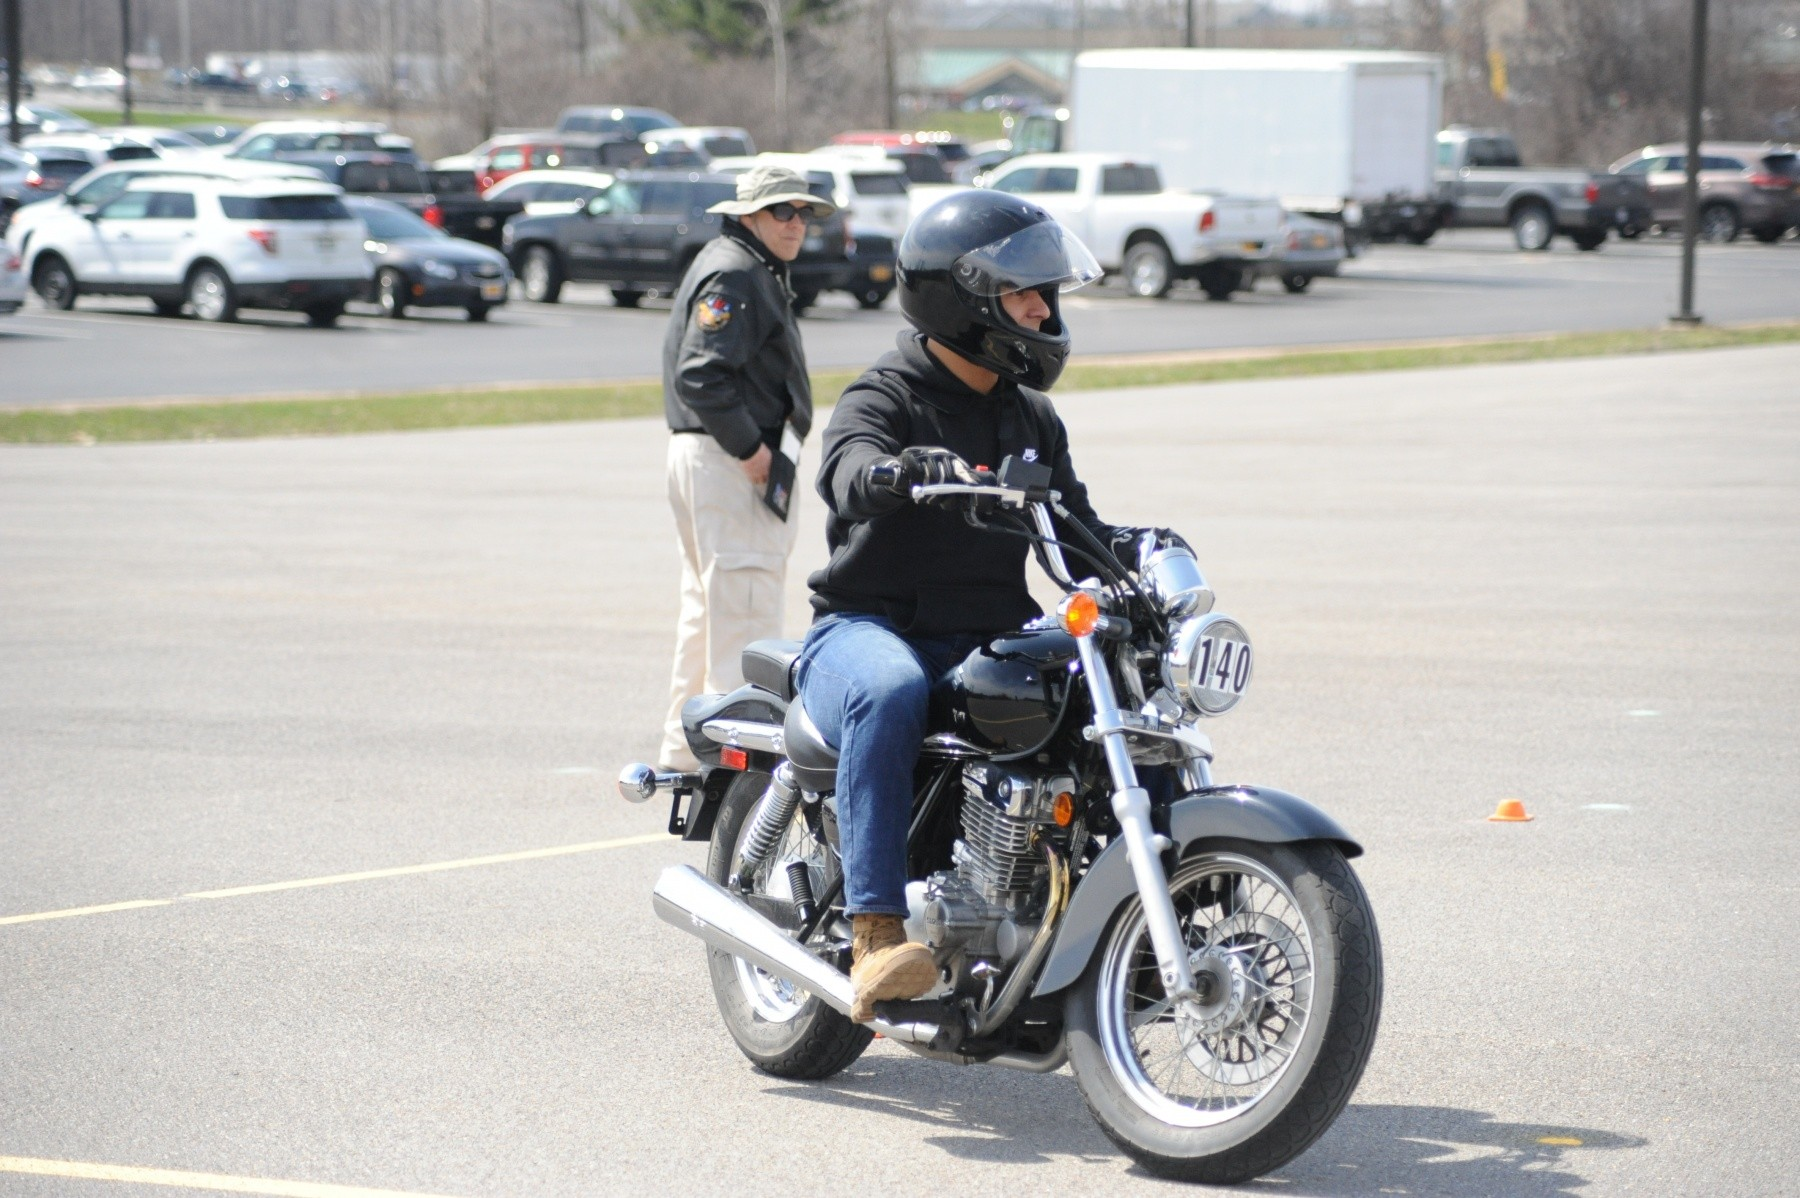 For Soldiers, motorcycling on, off post starts with mandatory Basic